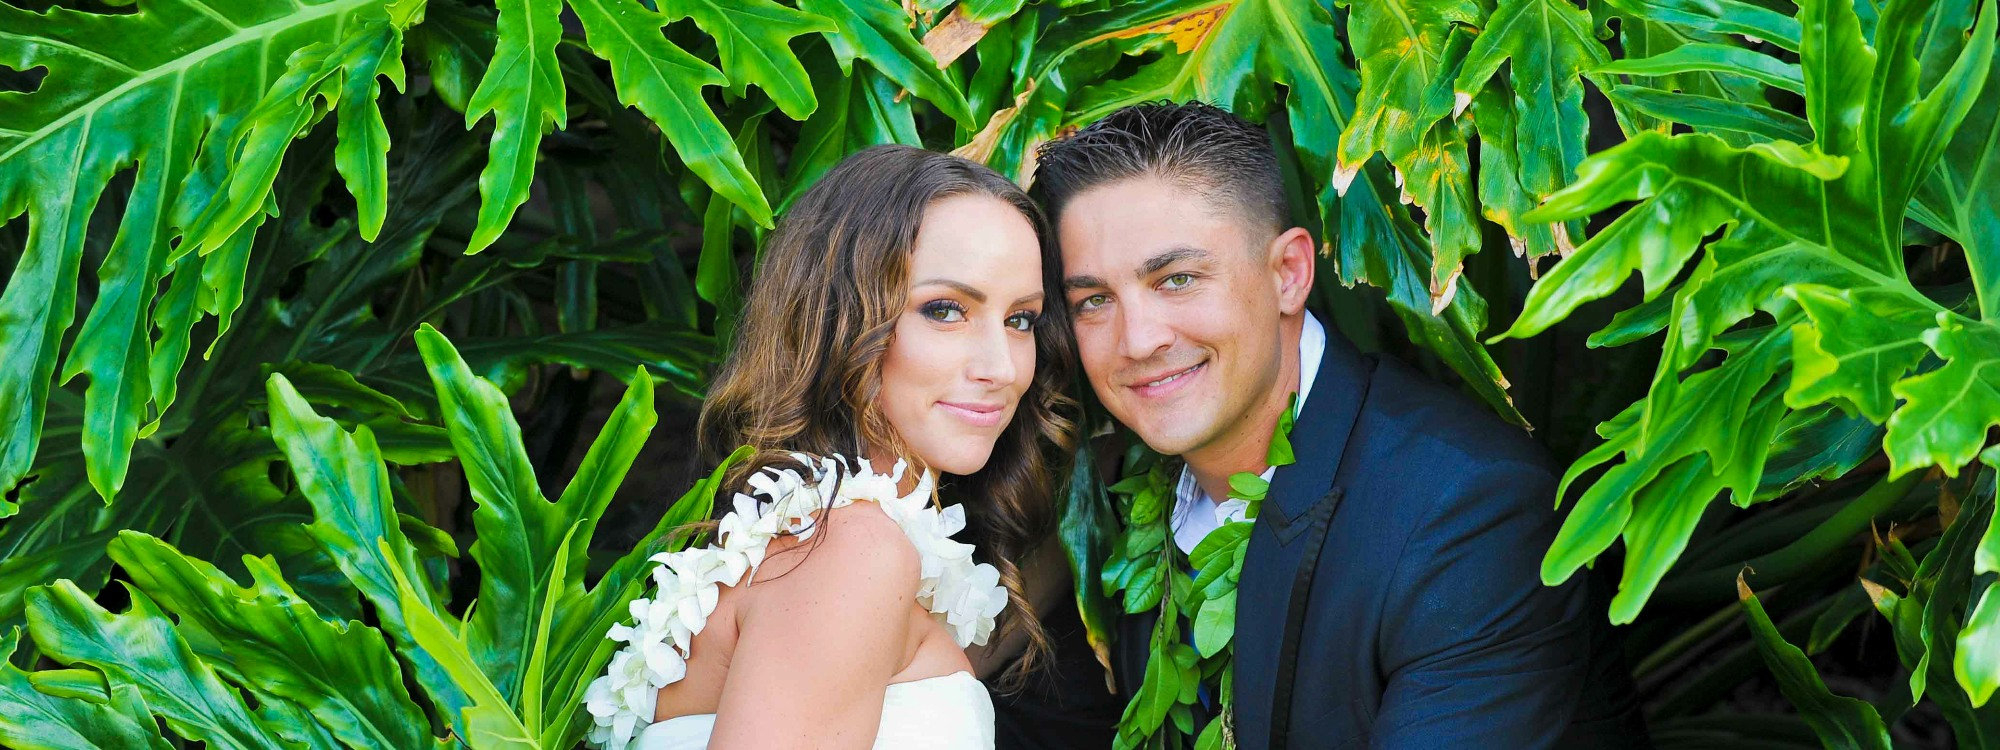 Maui Wedding Garden Locations